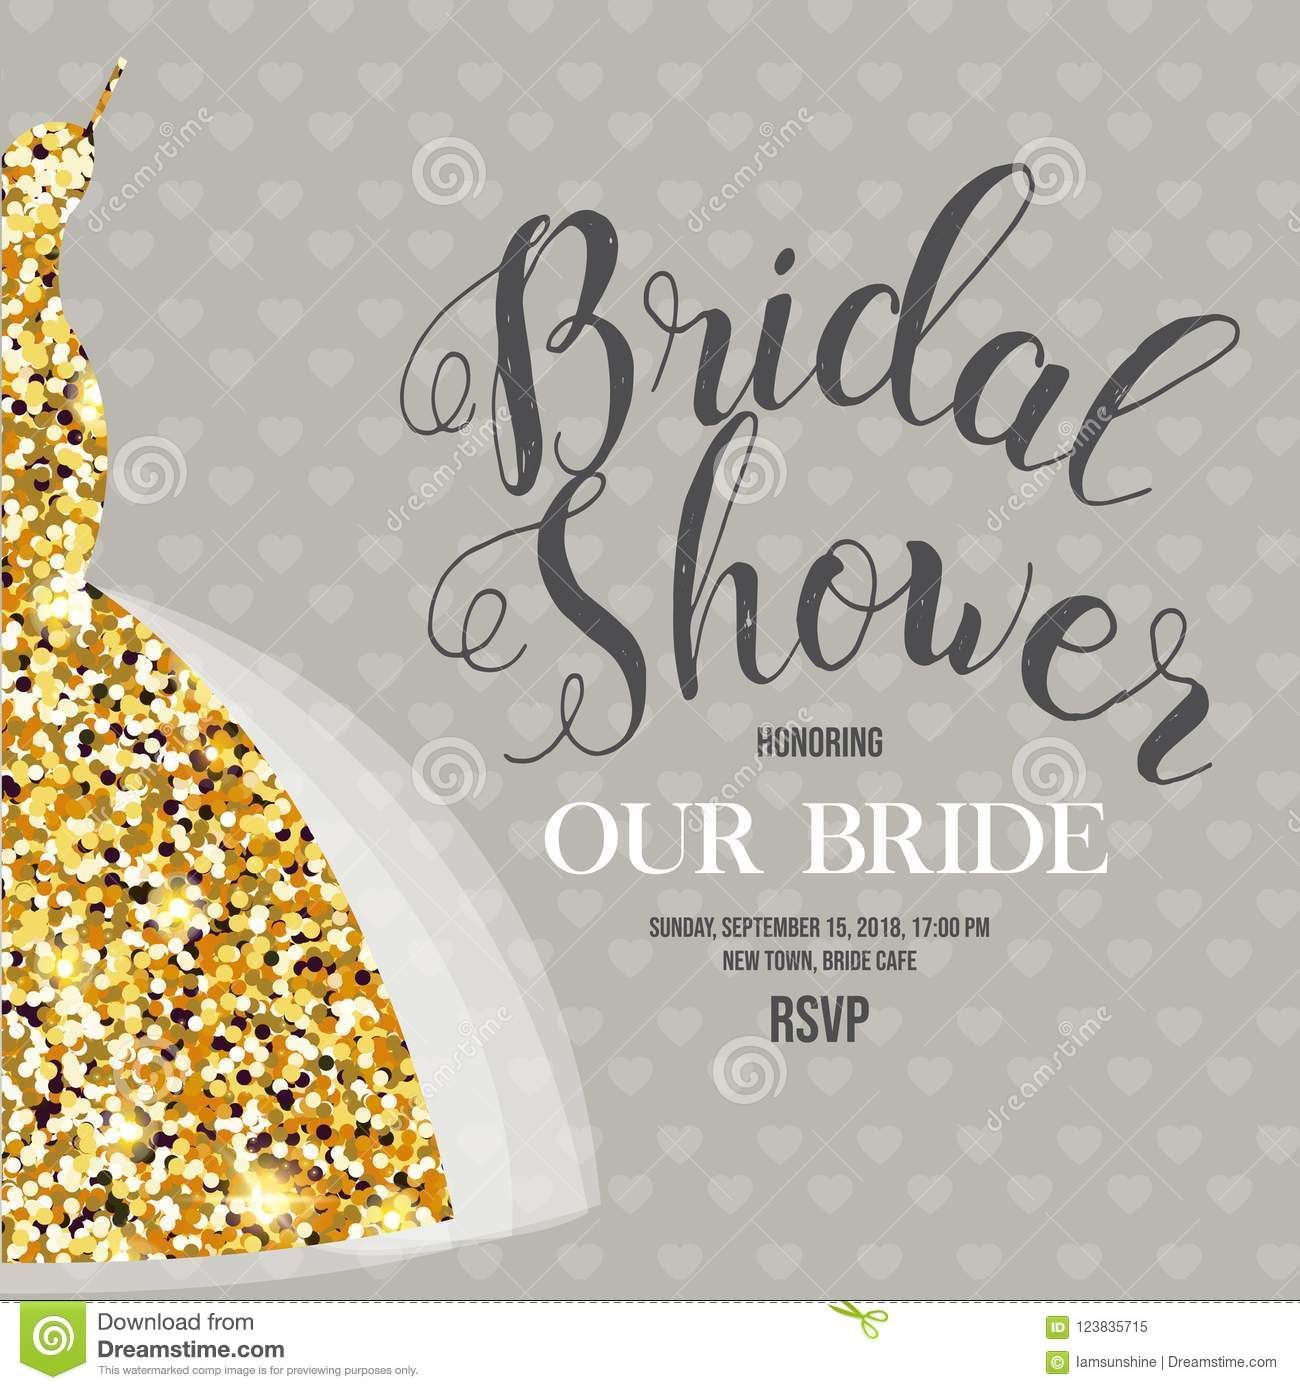 Bridal Shower Invitation With Wedding Dress Stock Vector ...